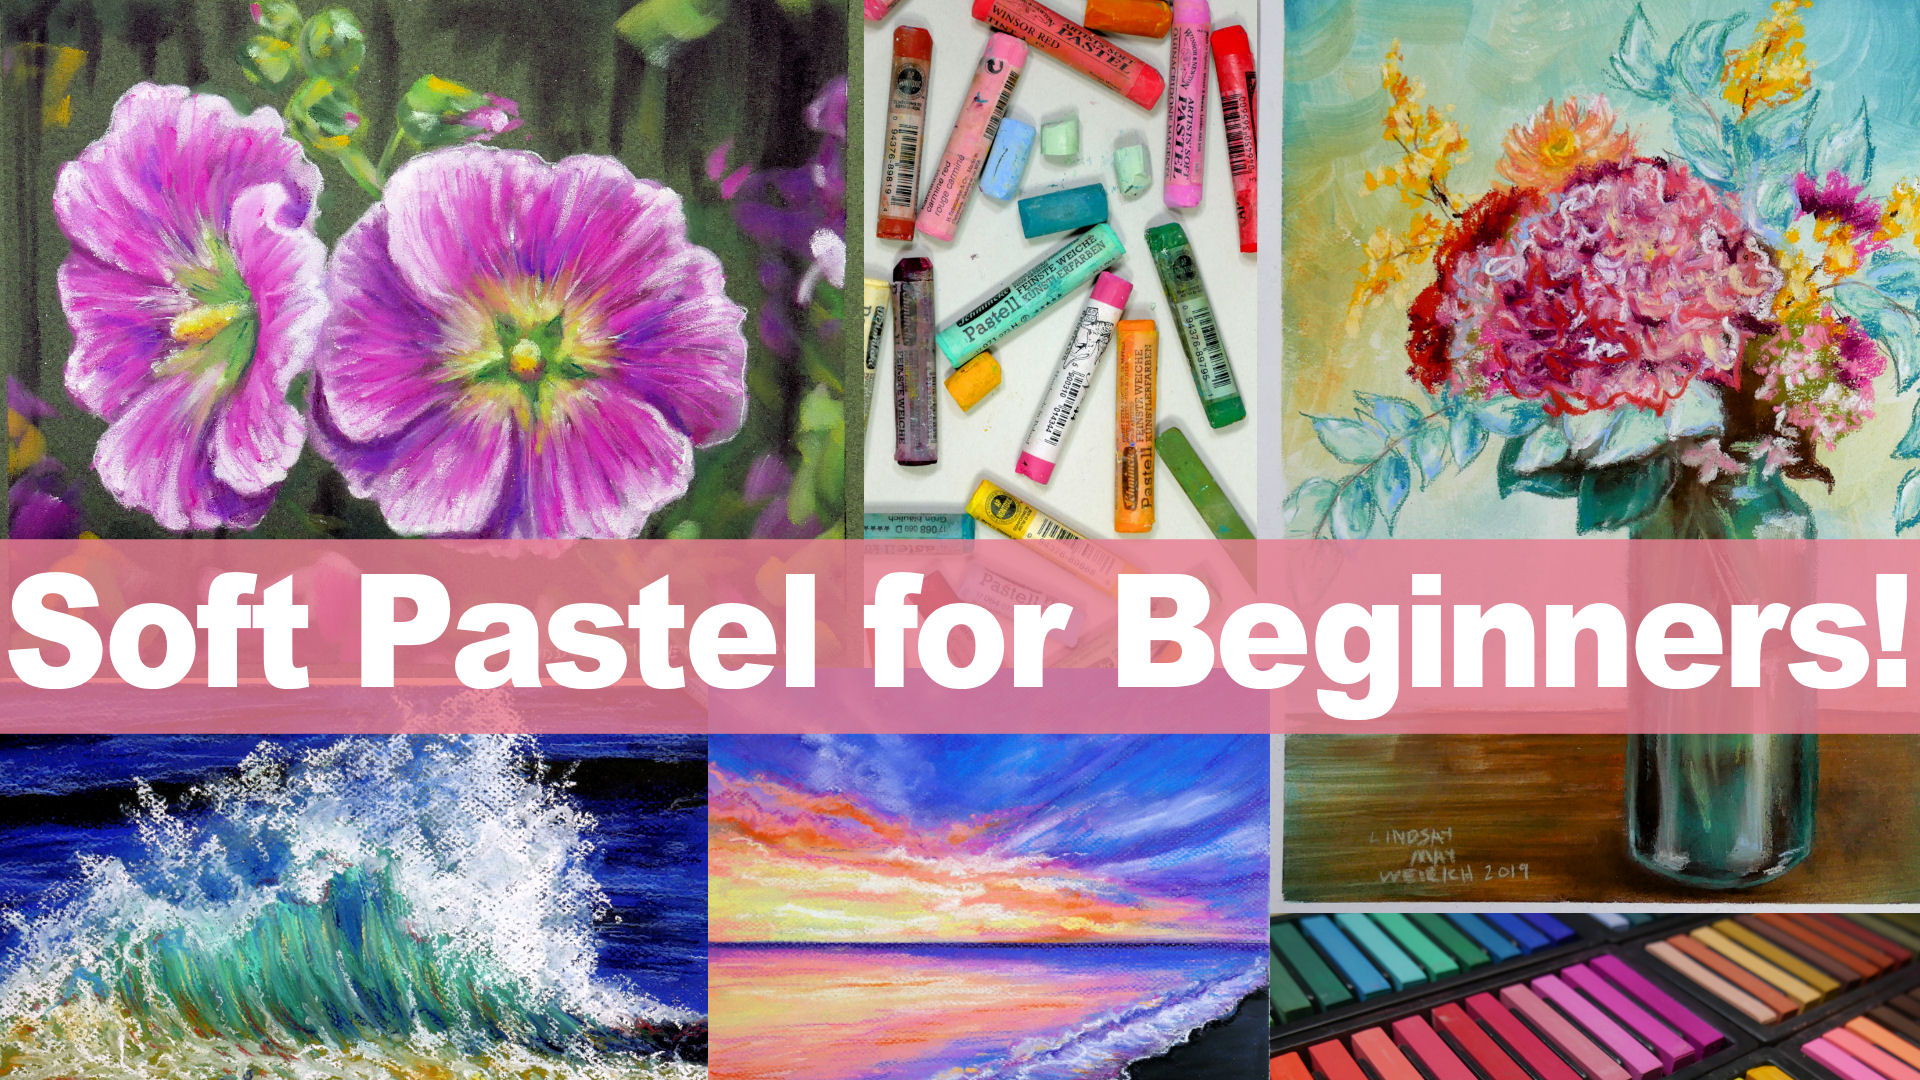 Live Stream Today 1pm ET & A New Pastel Class!